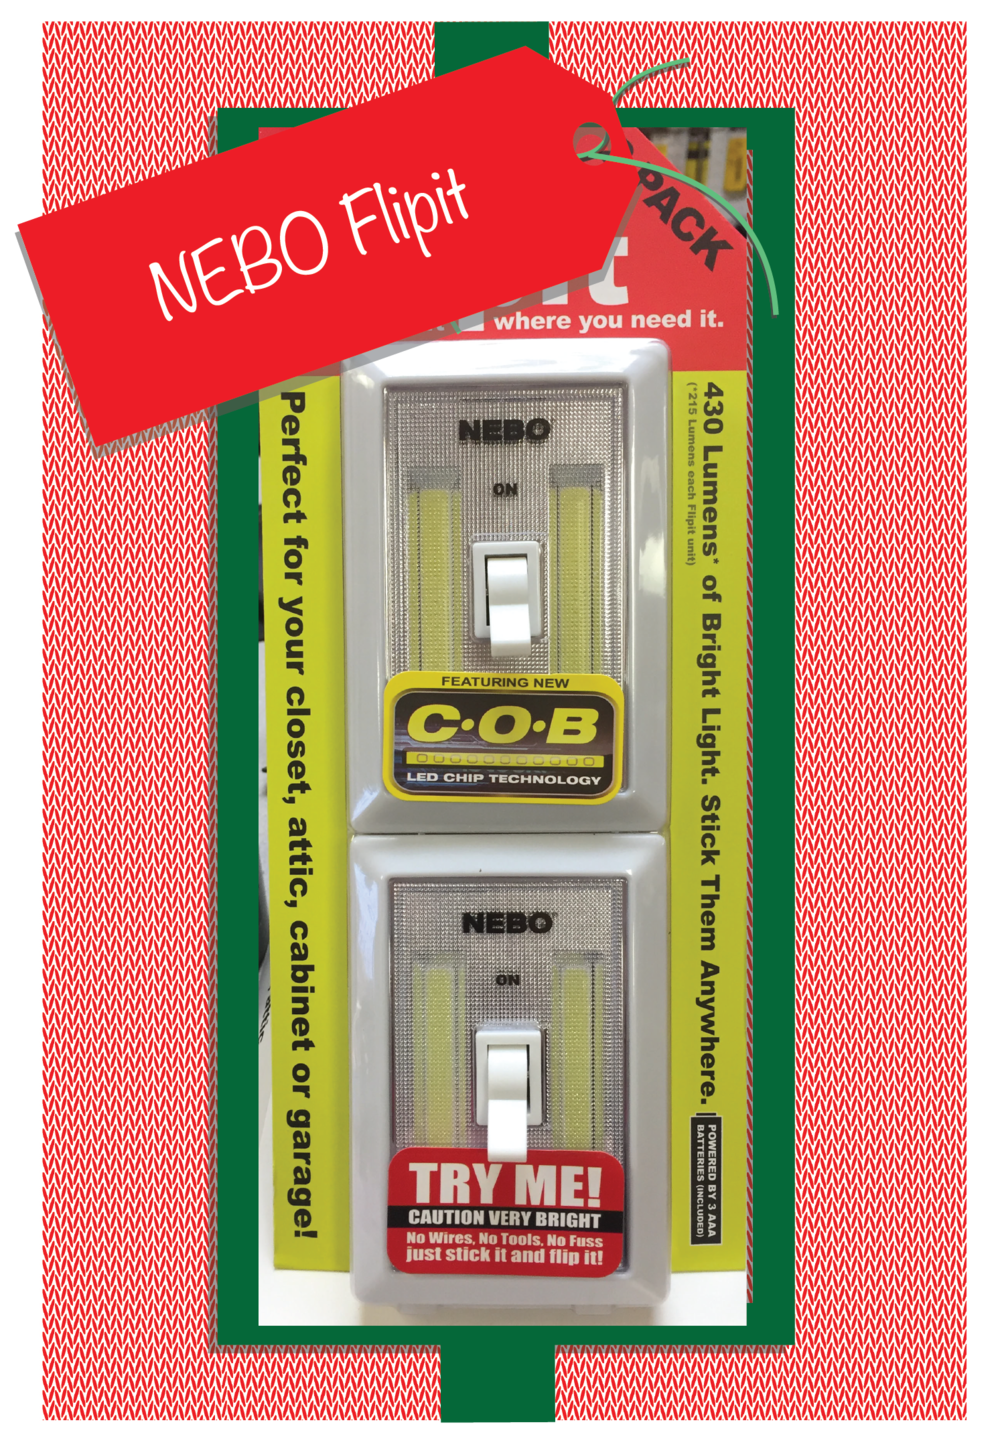 NEBO Flipit- two pack.